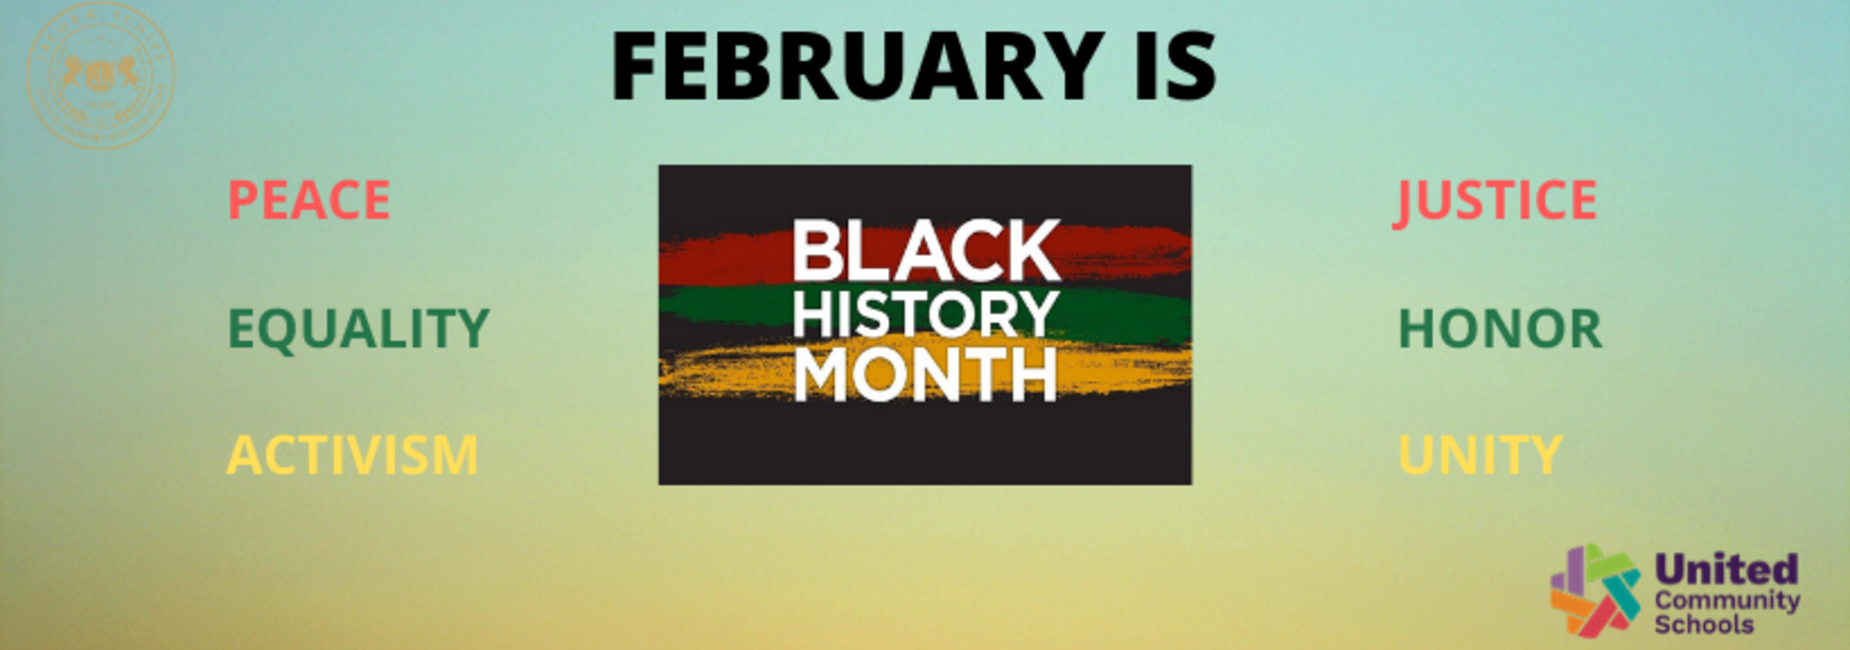 Black History Month Banner in English